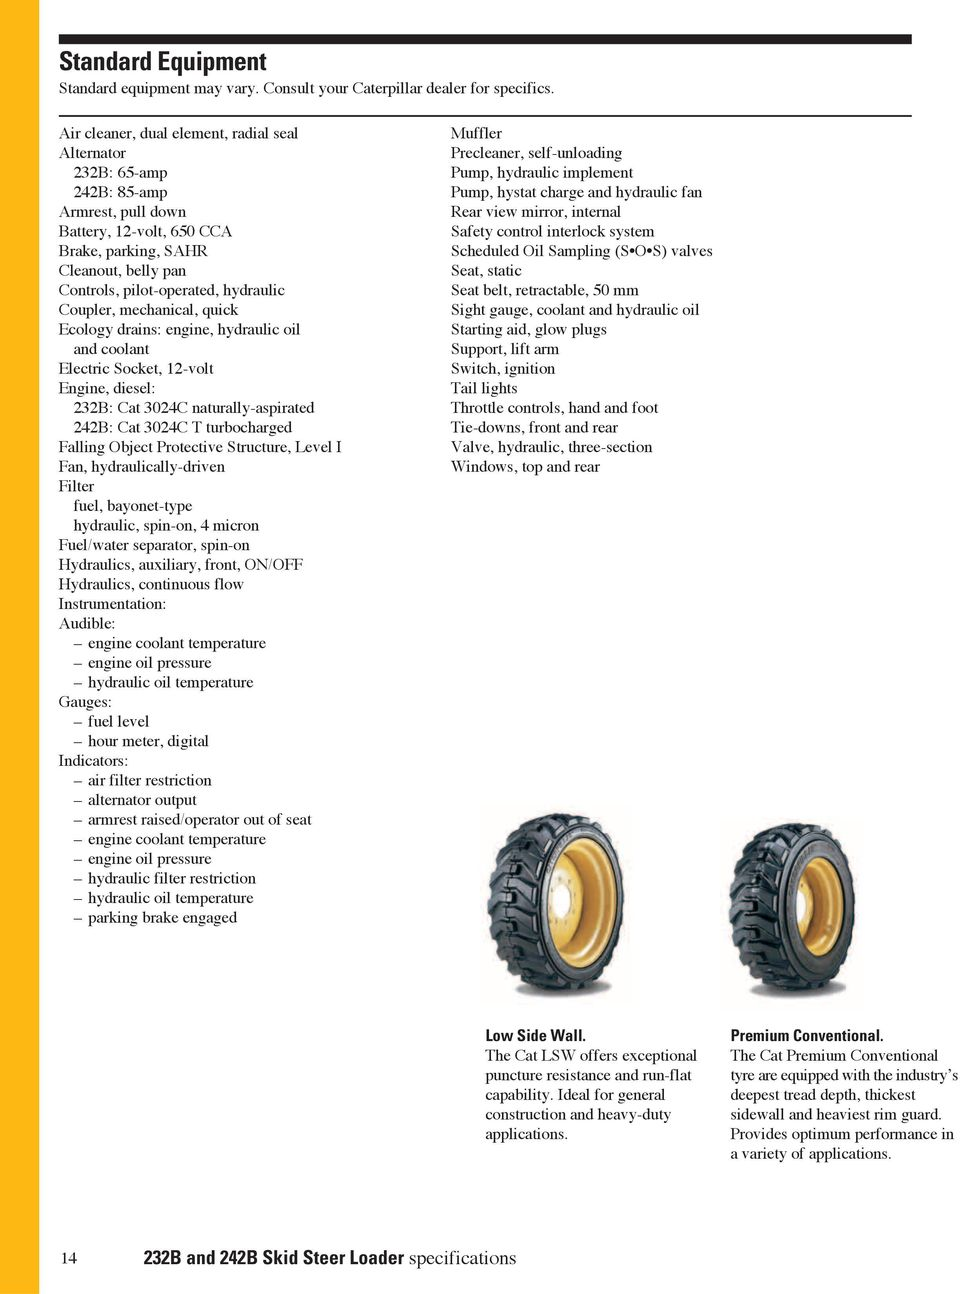 232B, 242B  Skid Steer Loaders - PDF